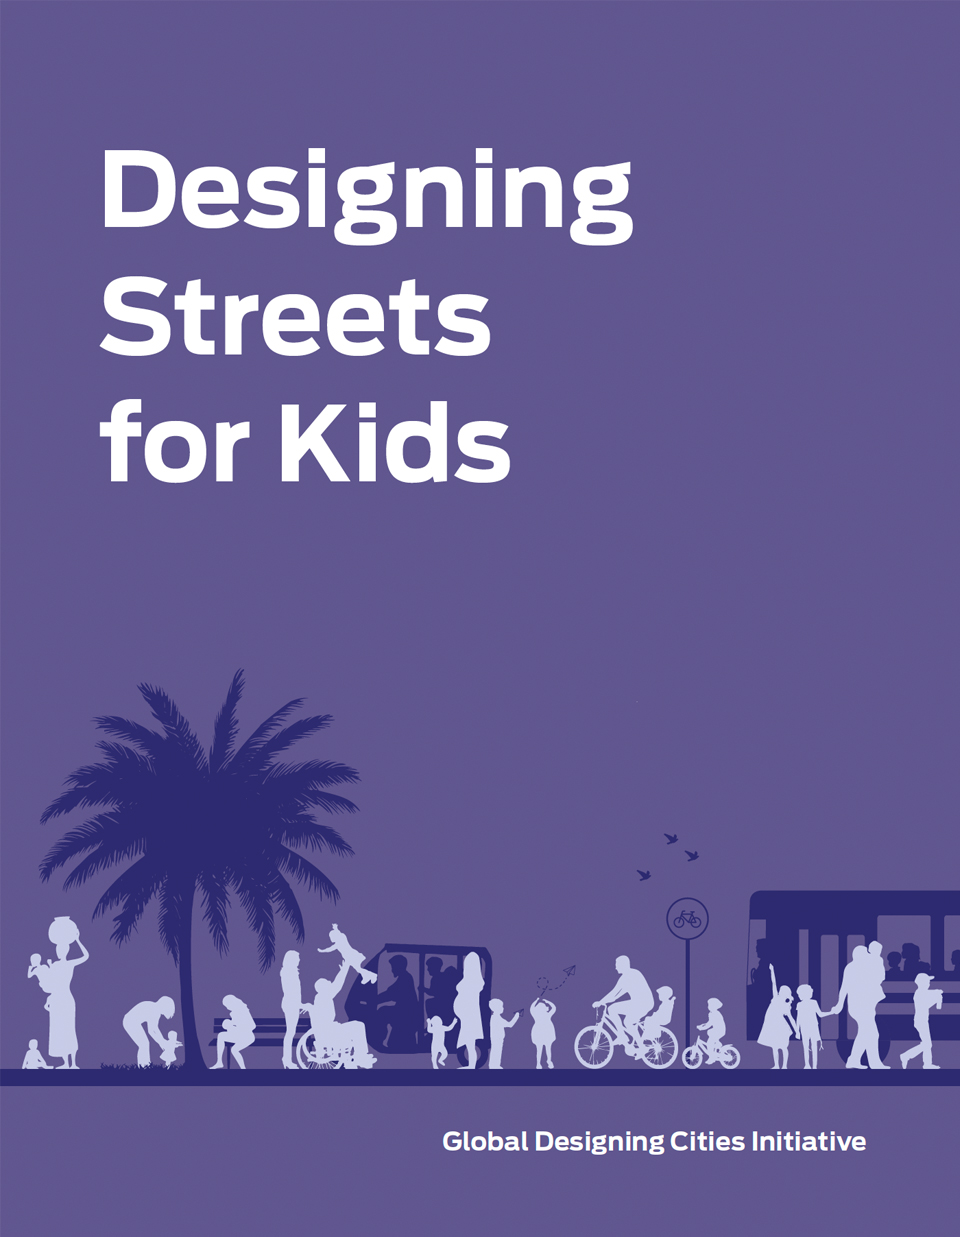 Designing Streets for Kids Guide Index